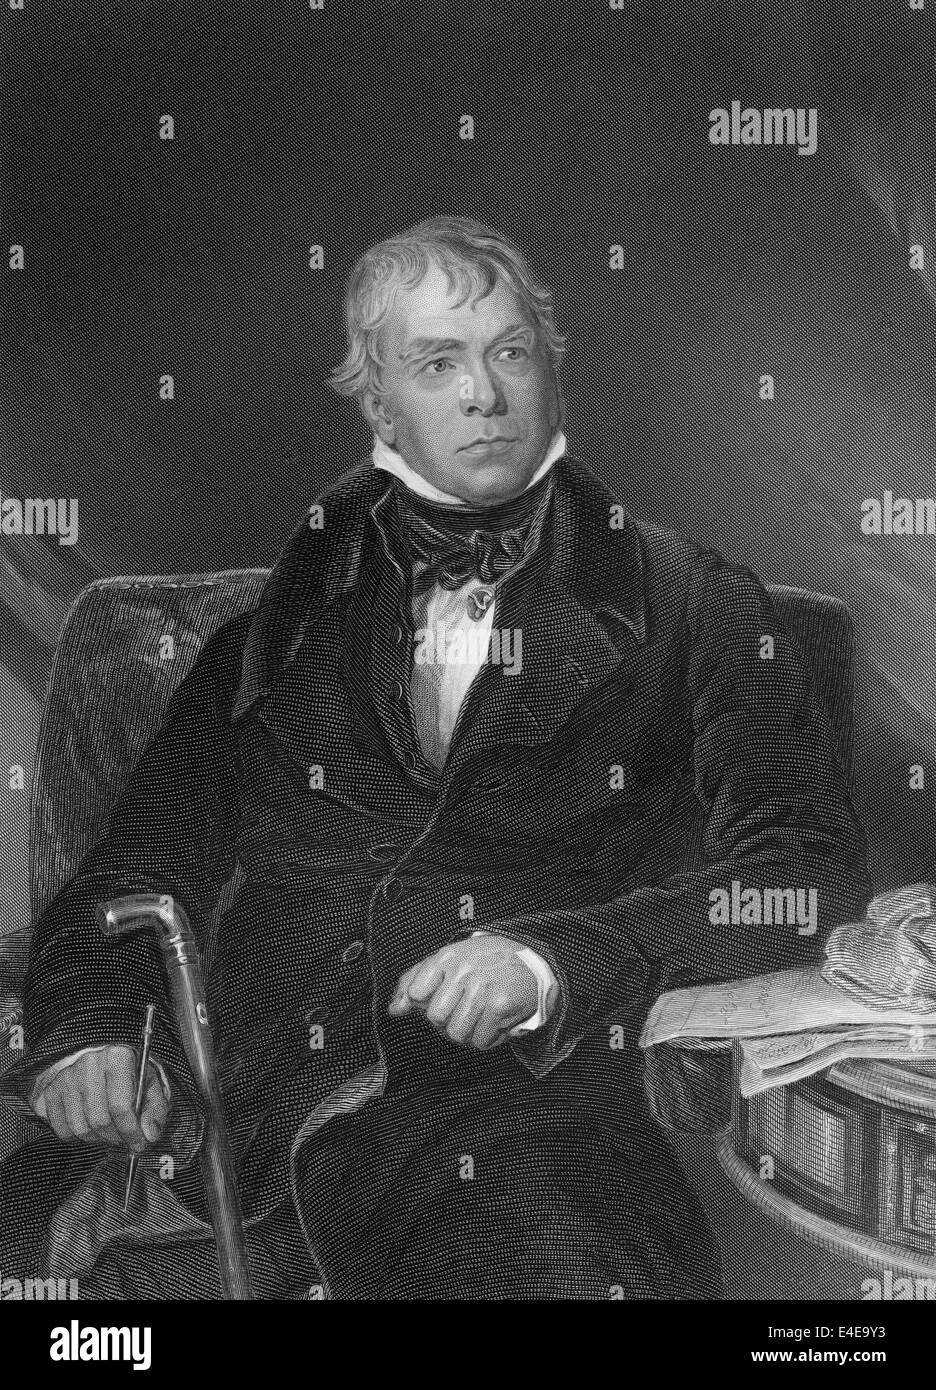 Sir Walter Scott, 1st Baronet of Abbotsford, 1771 - 1832, a Scottish poet and writer, - Stock Image